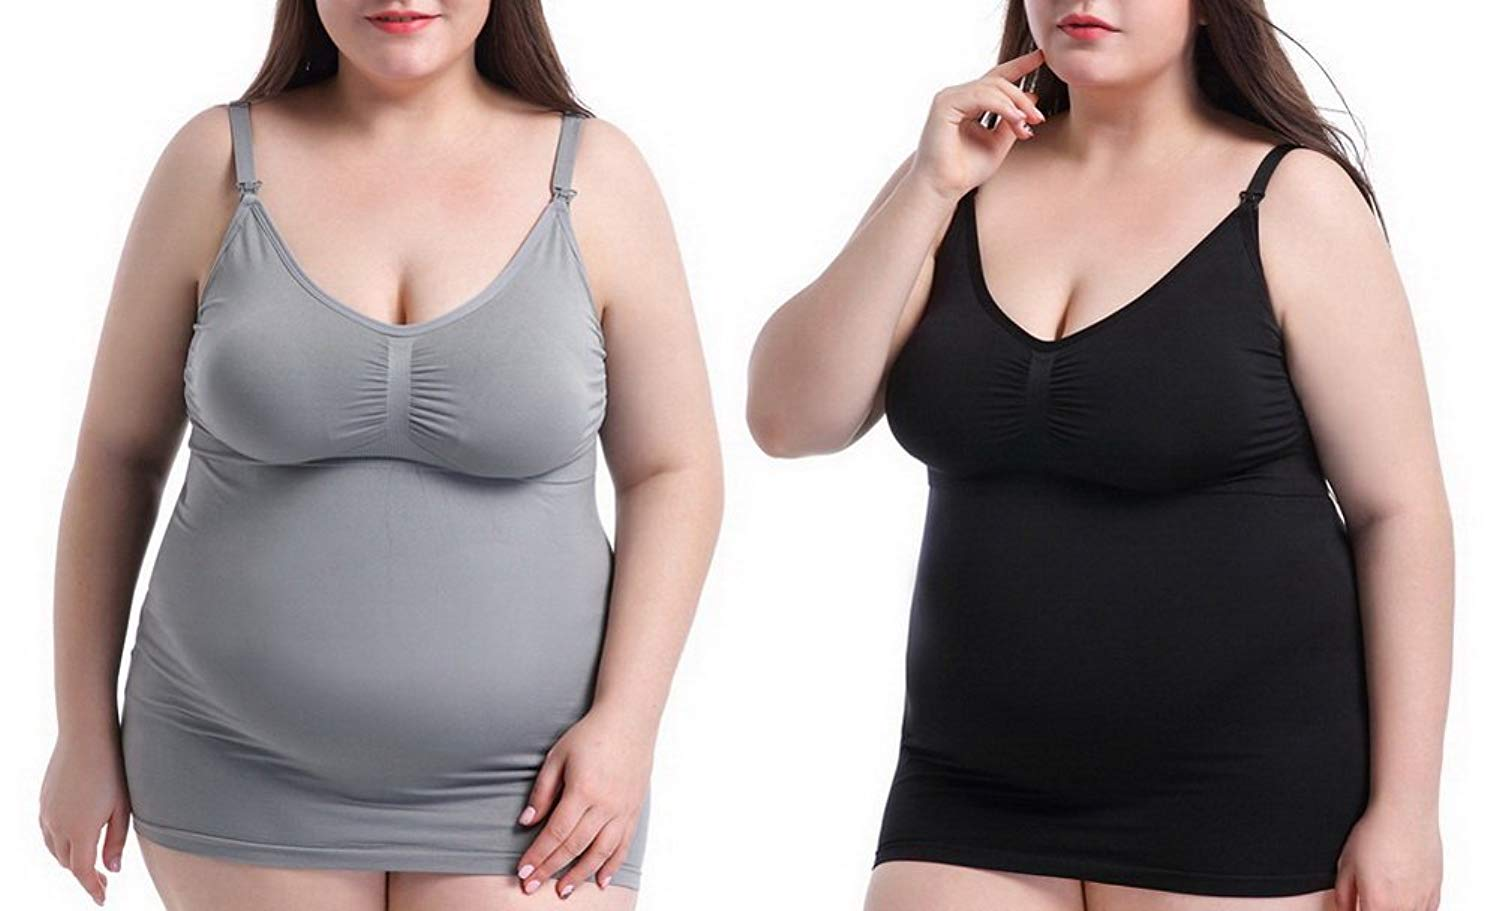 07f6c734c7f Get Quotations · Foucome 2 Pack Plus Size Seamless Nursing Bra with  Removable Pads Cami Tank Top with Clasp